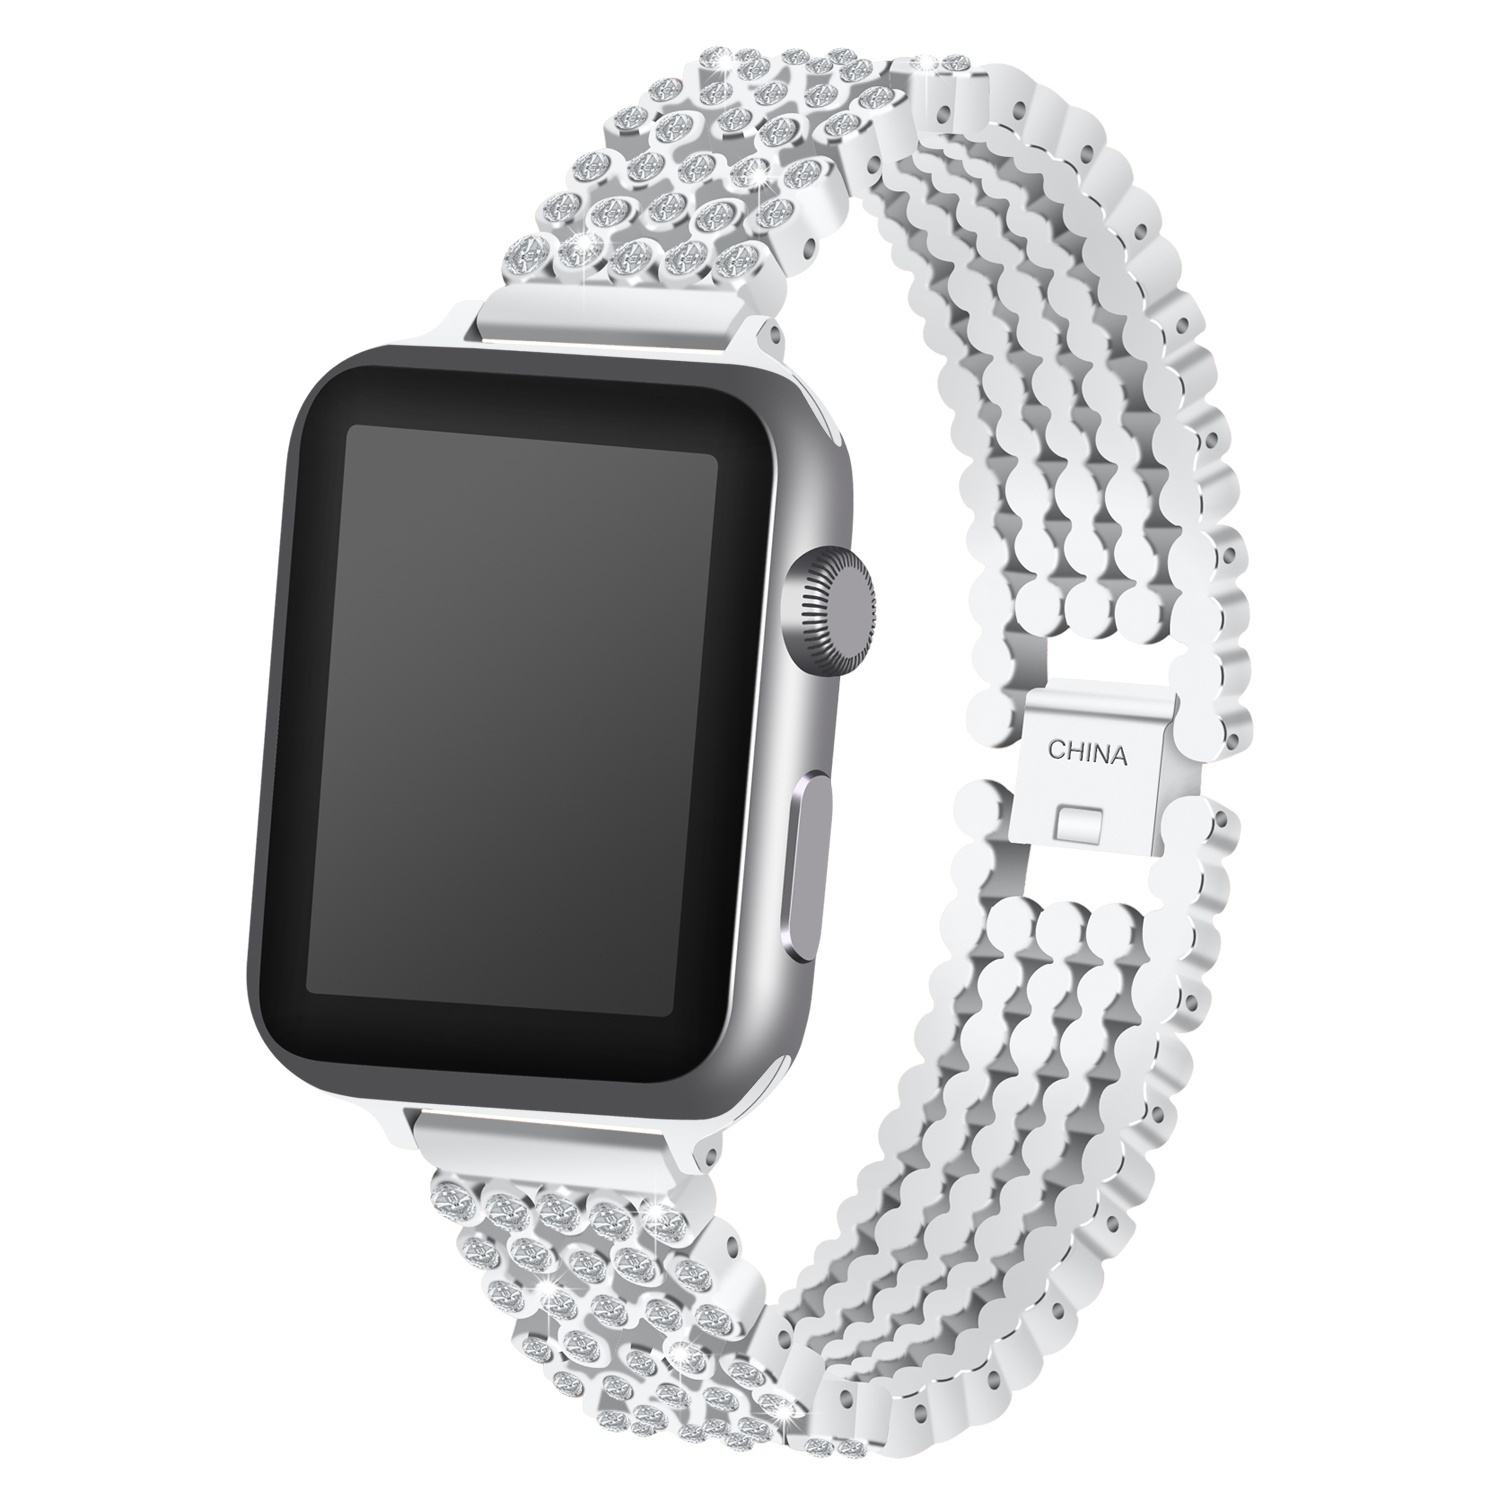 Image 3 - Crystal Diamond strap for Apple Watch band 38mm 42mm 40mm 44mm stainless steel Replacement Bands for iWatch series 5 4 3 2 1strap for apple watchreplacement strapstrap for -